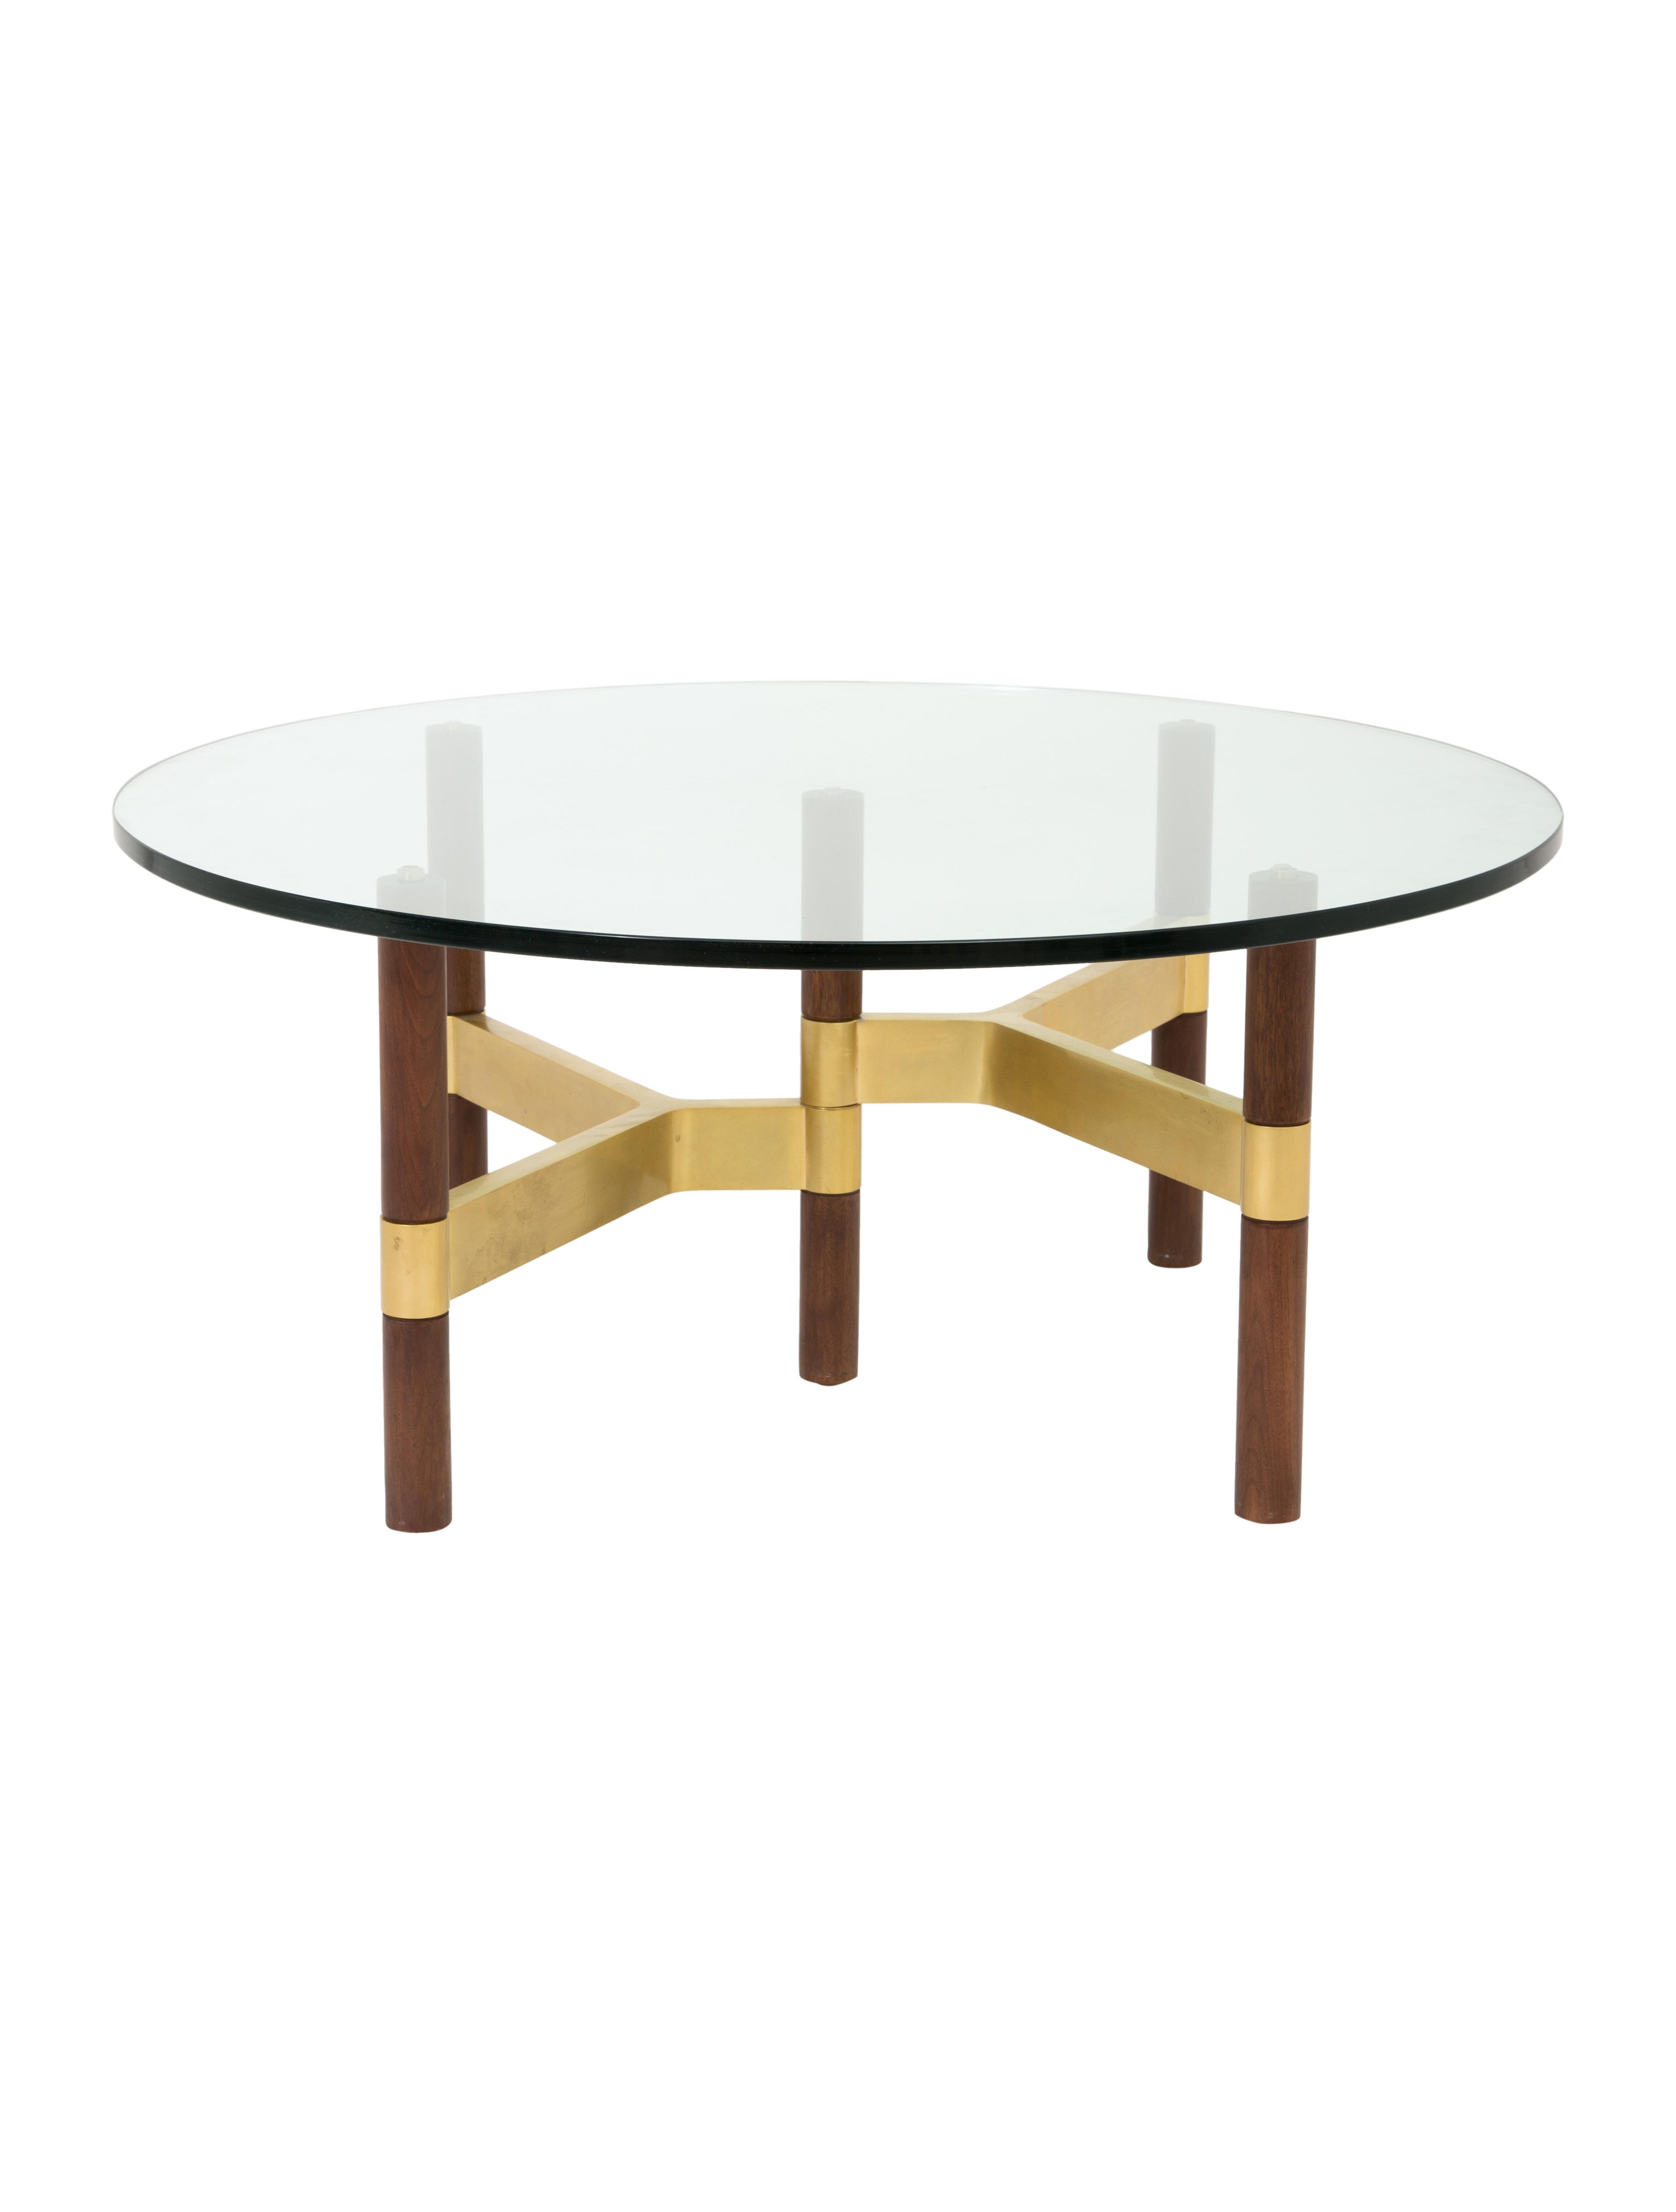 glass coffee table design within reach photo - 4